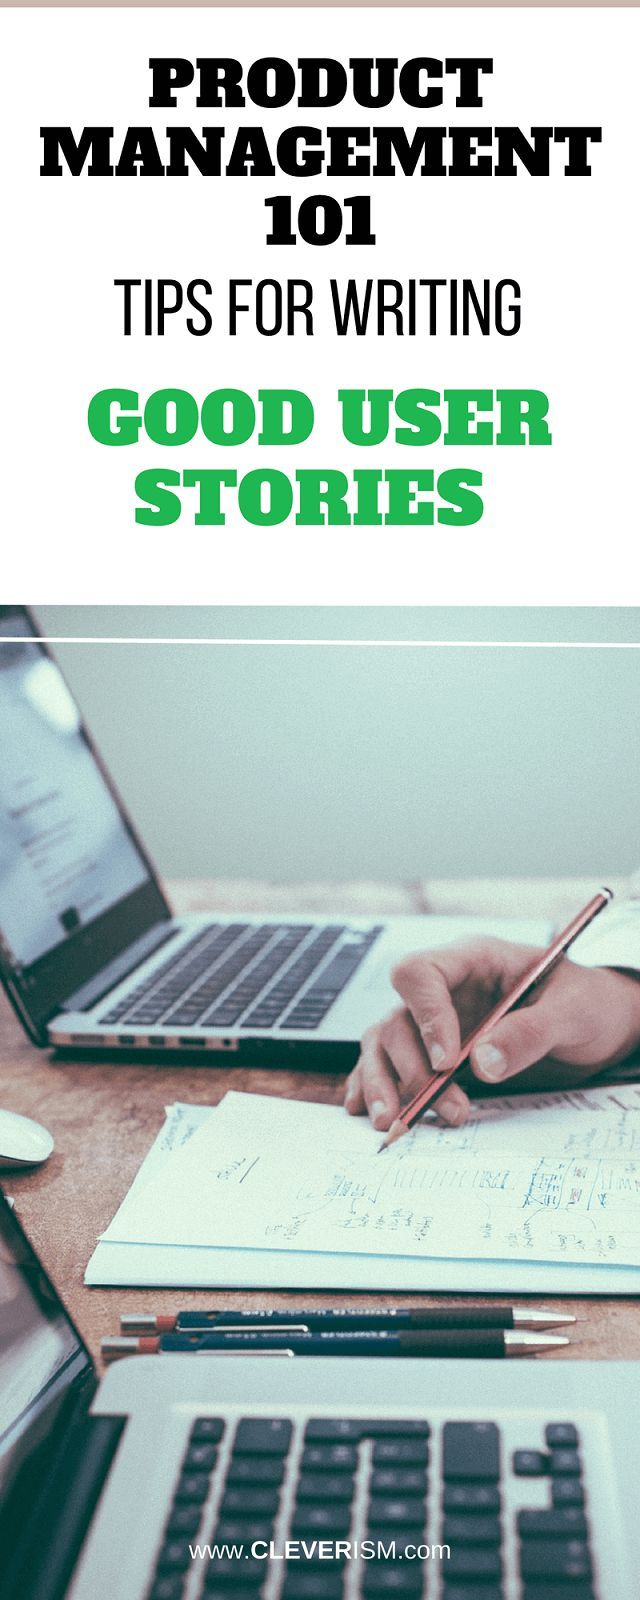 Product Management 101: Tips for Writing Good User Stories